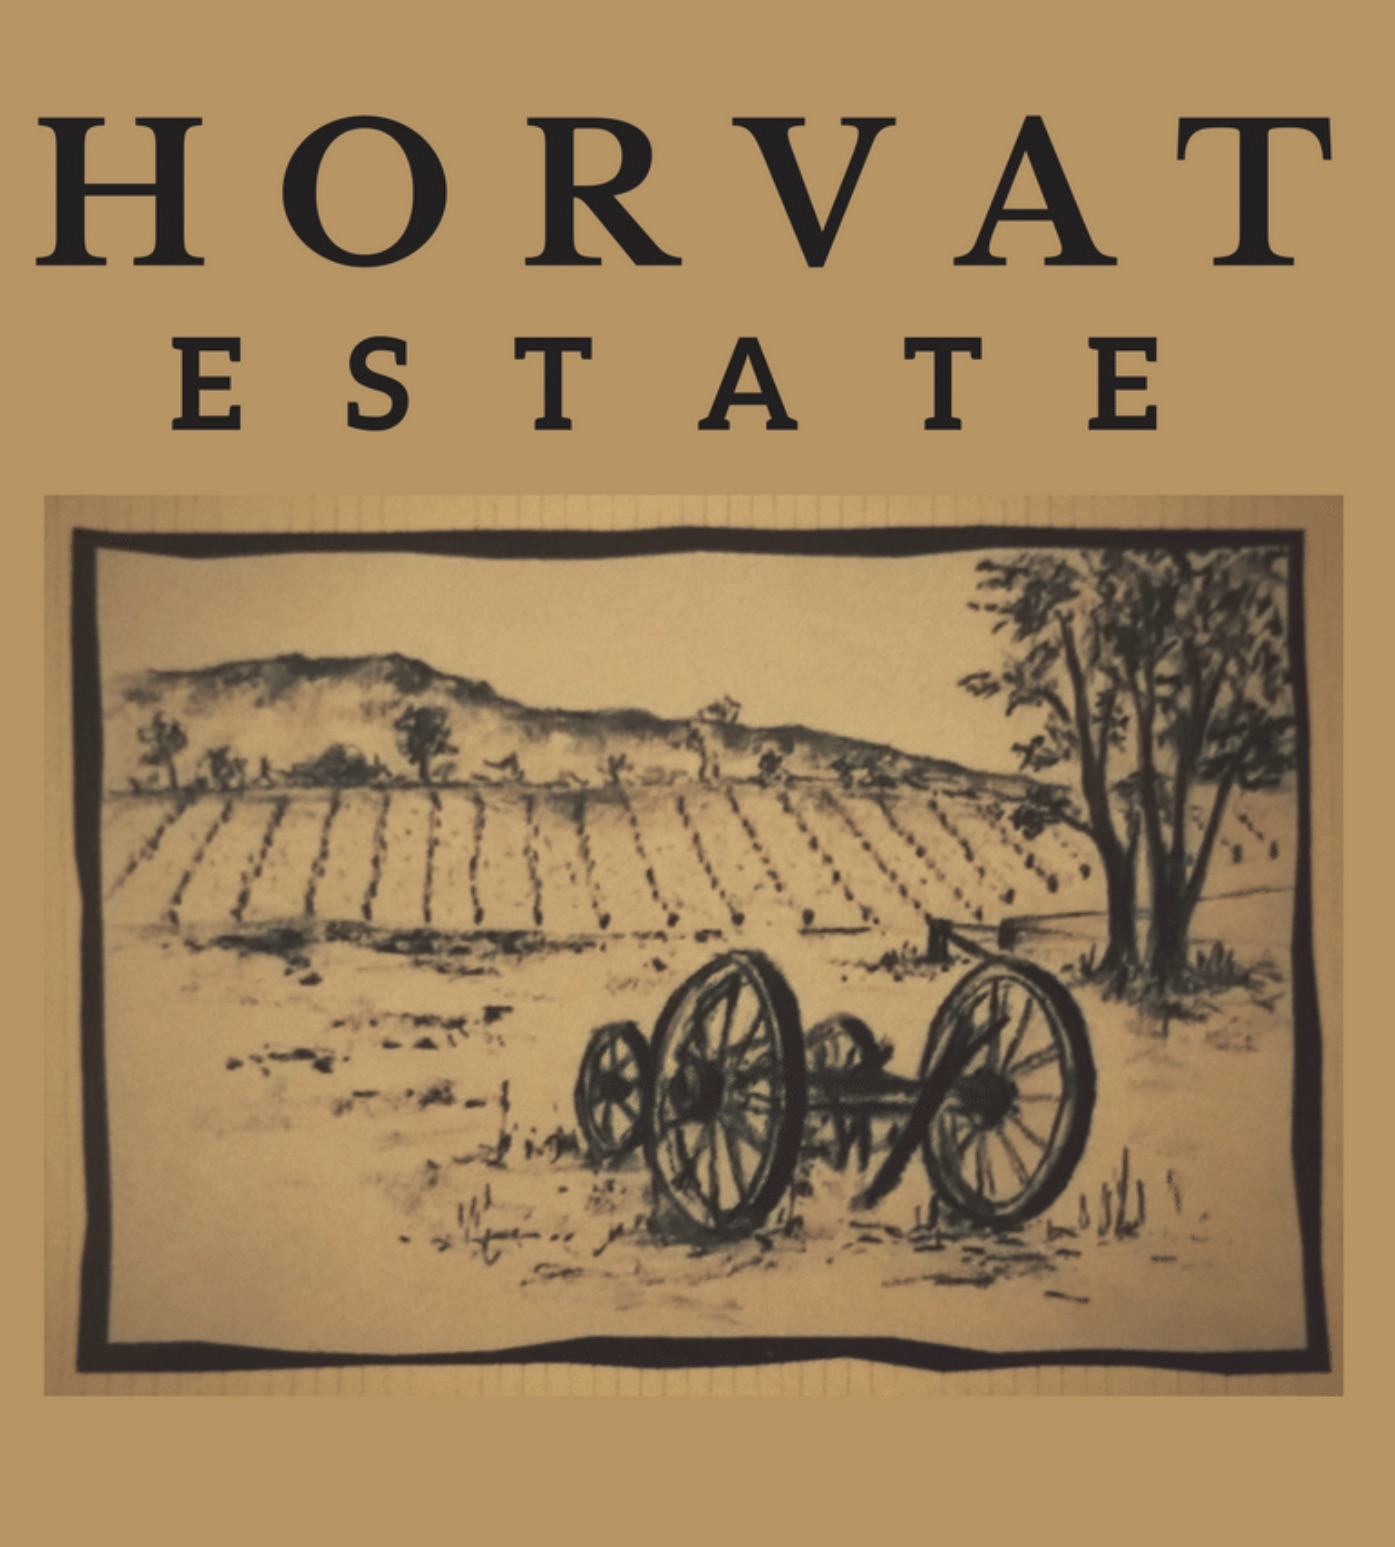 Horvat Estate - Vineyard and Winery